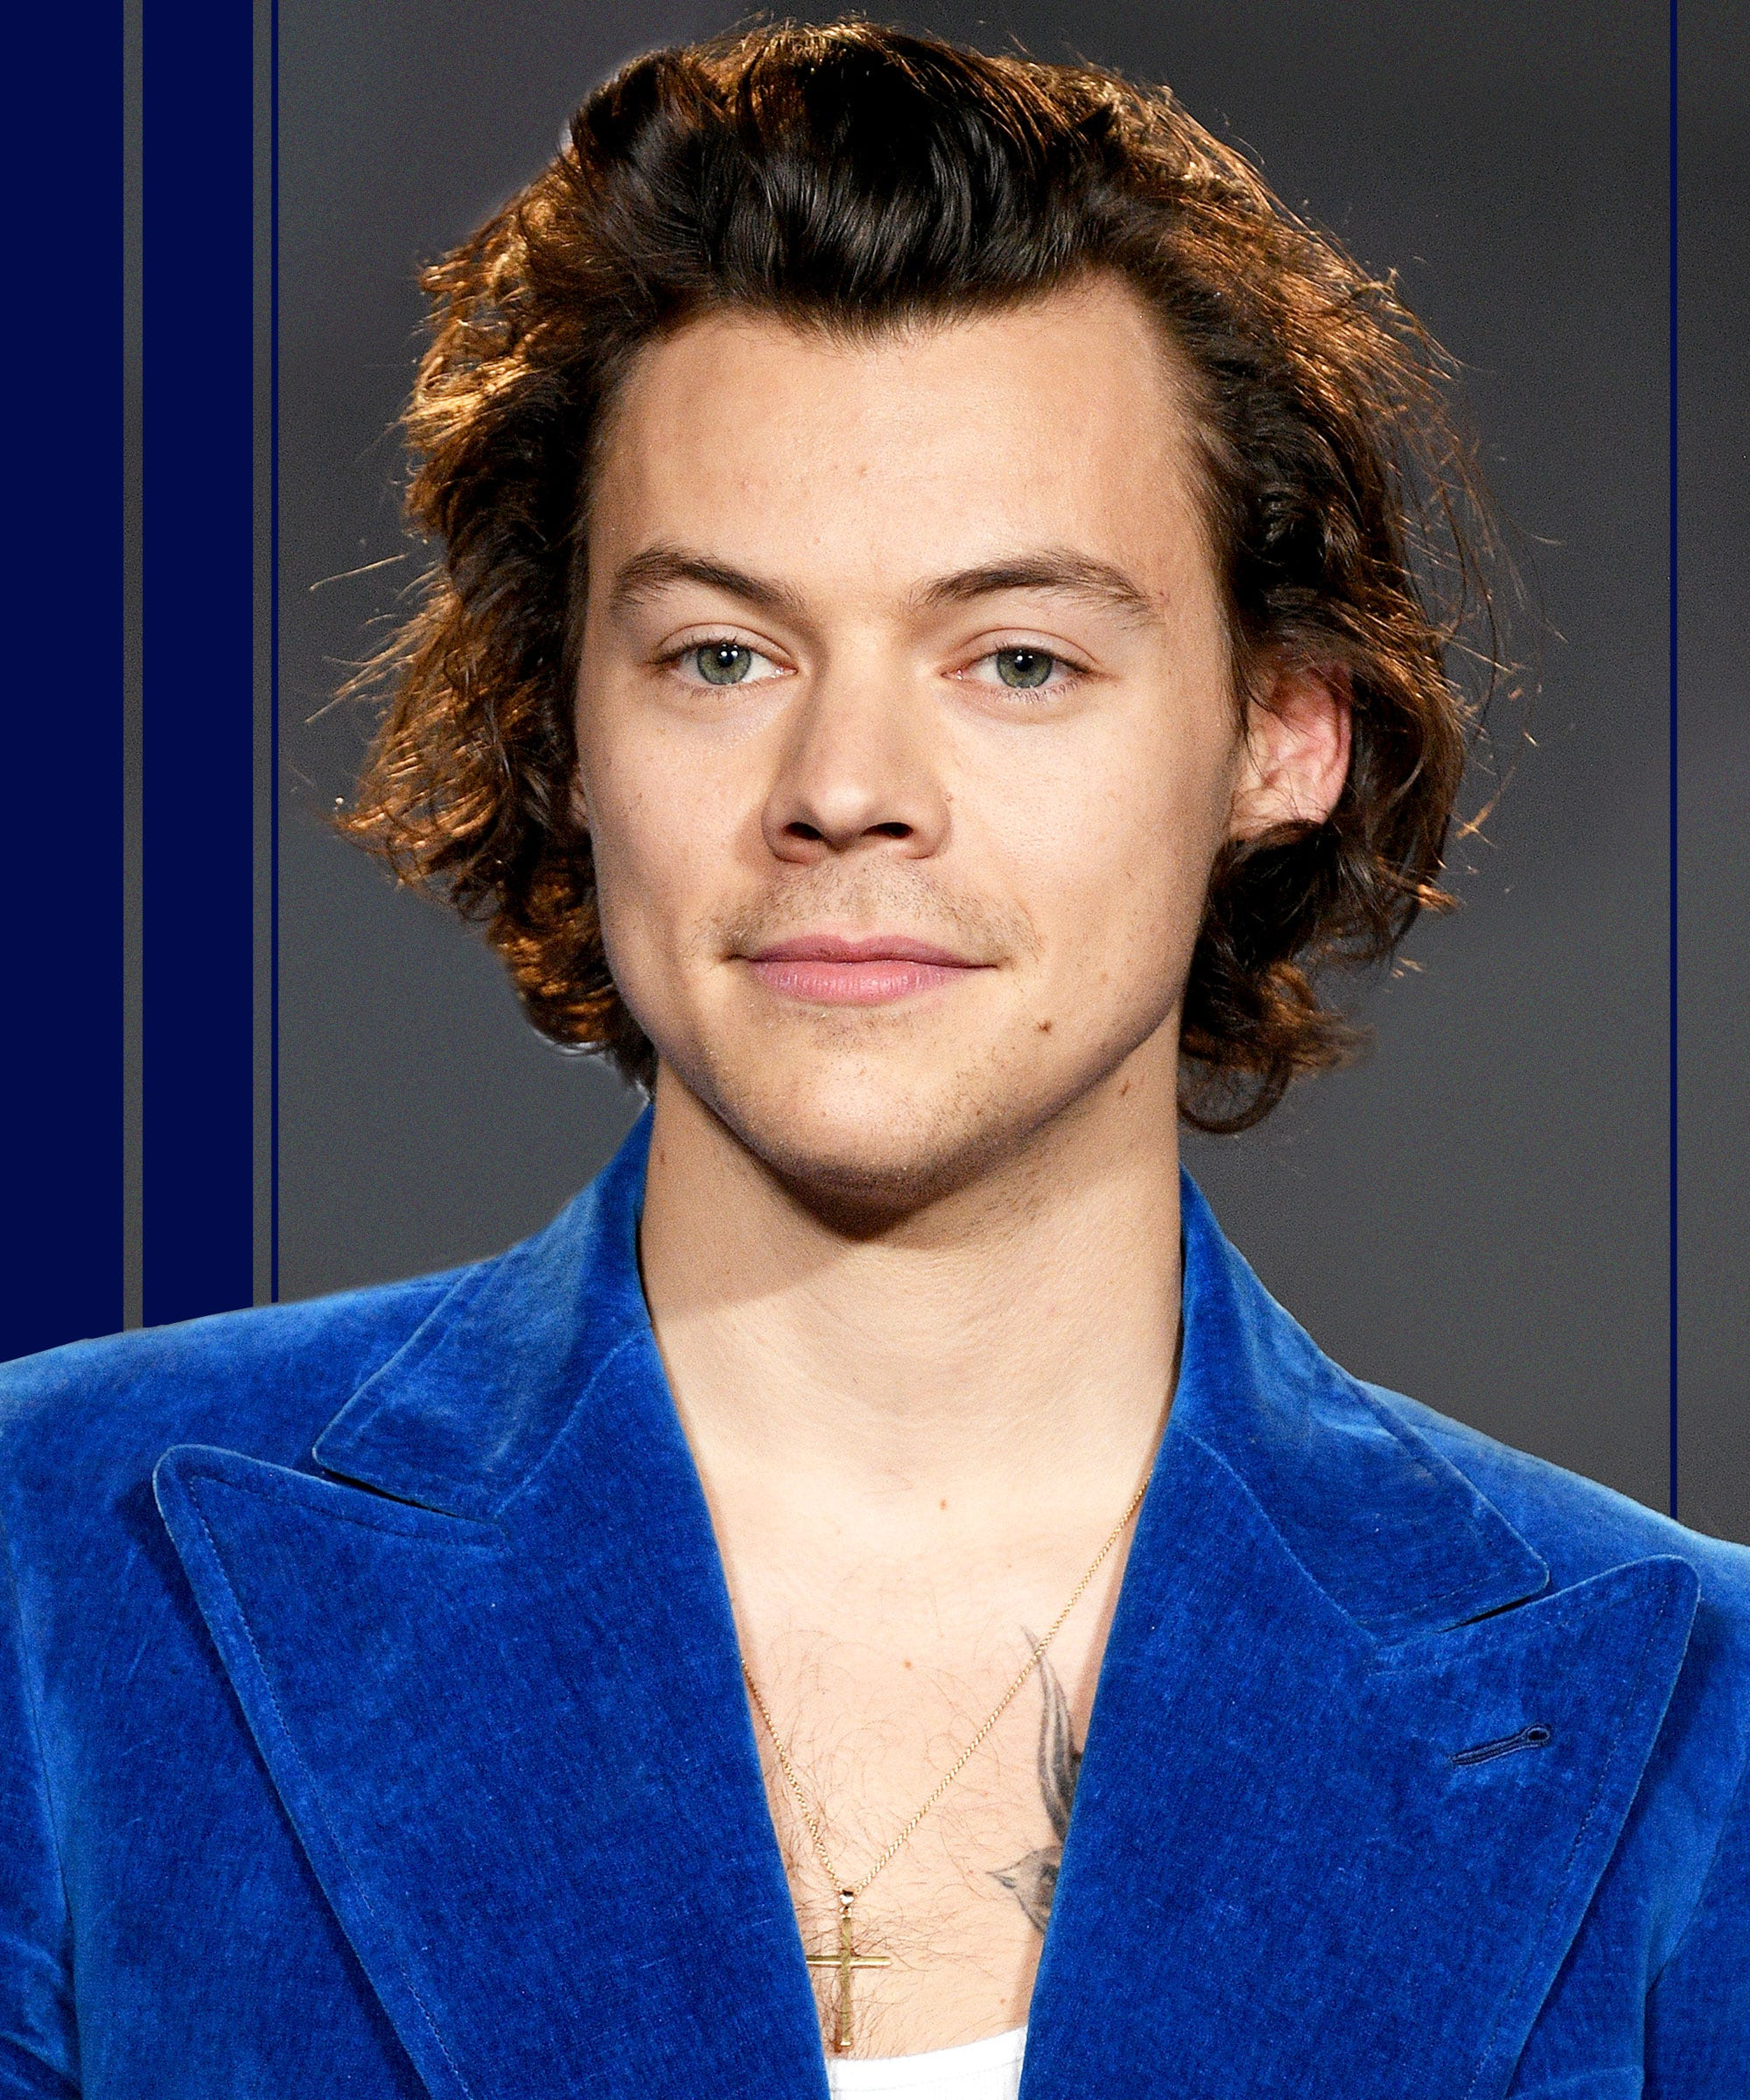 Harry Styles Got 3 Dainty New Tattoos — But What Do They Mean?